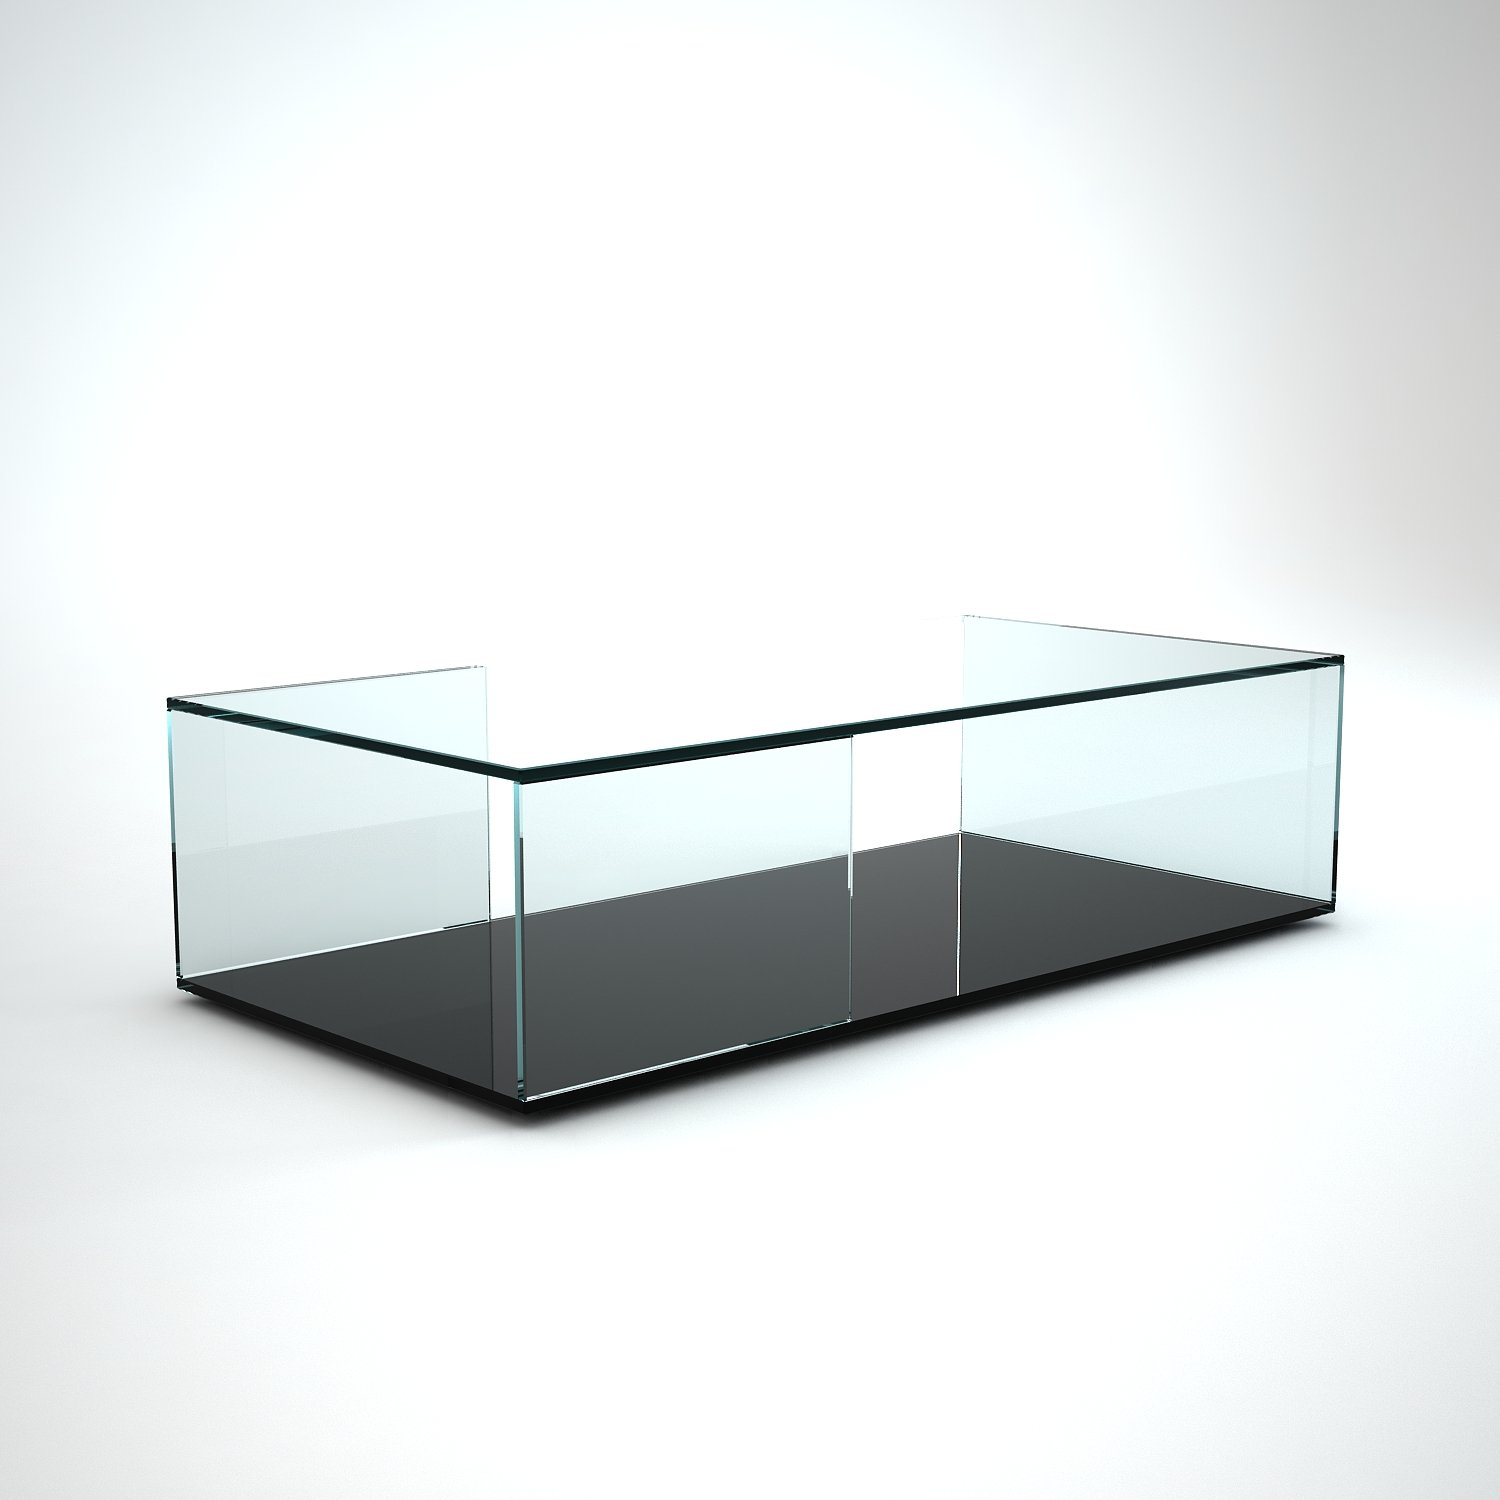 Tifino rectangular glass coffee table by klarity klarity for Glass furniture